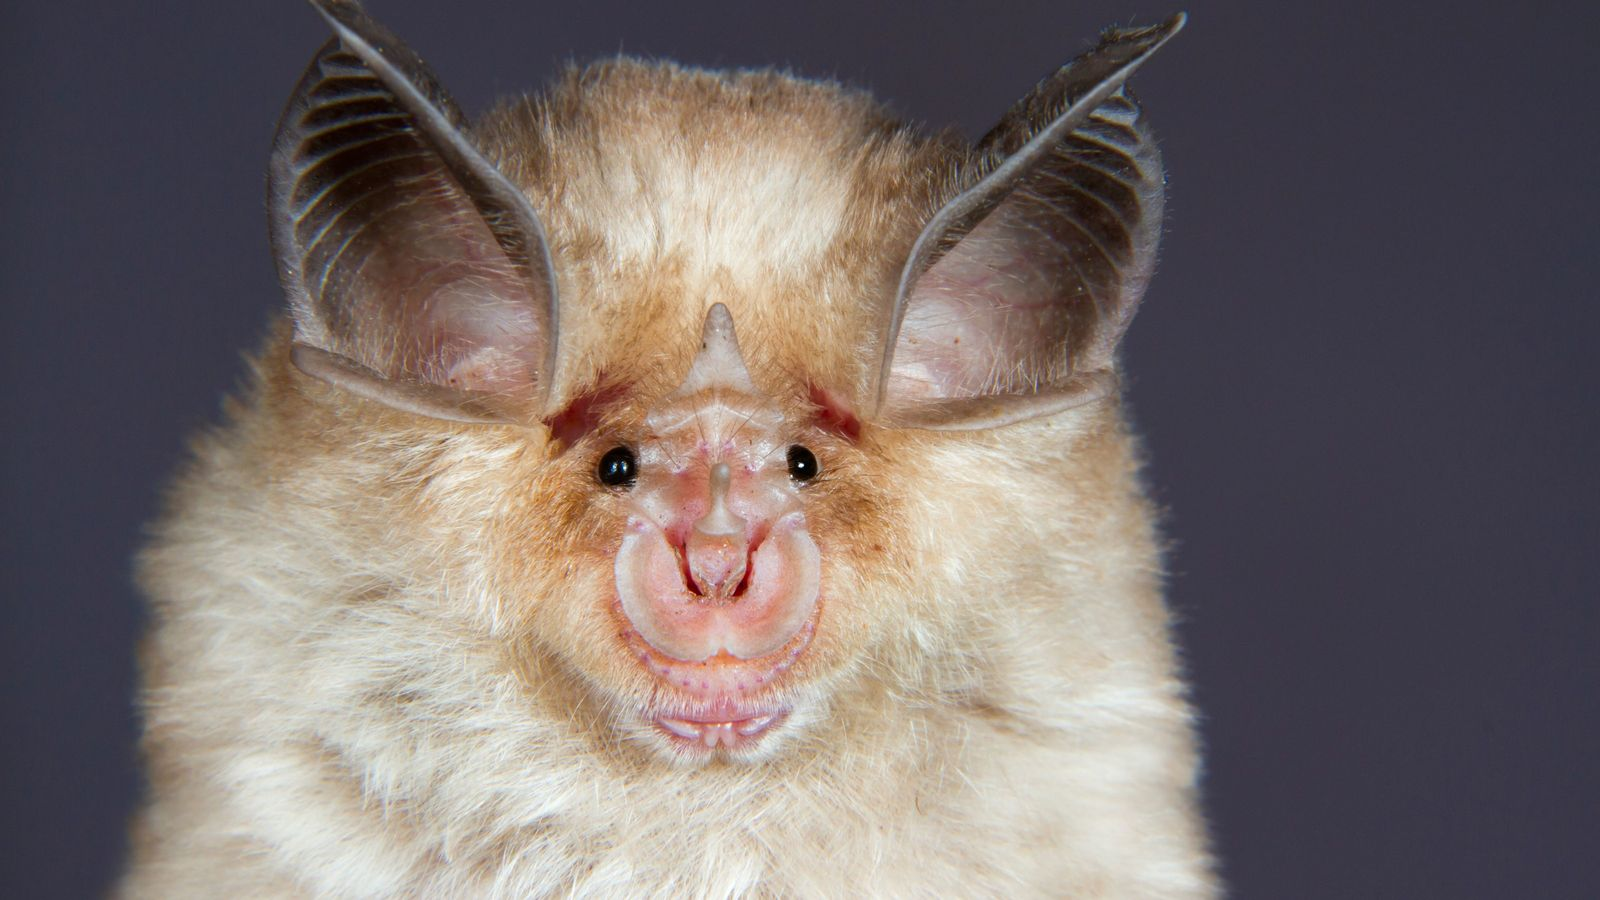 A Mediterranean horseshoe bat (Rhinolophus euryale). This family of bat species take their name from the ...